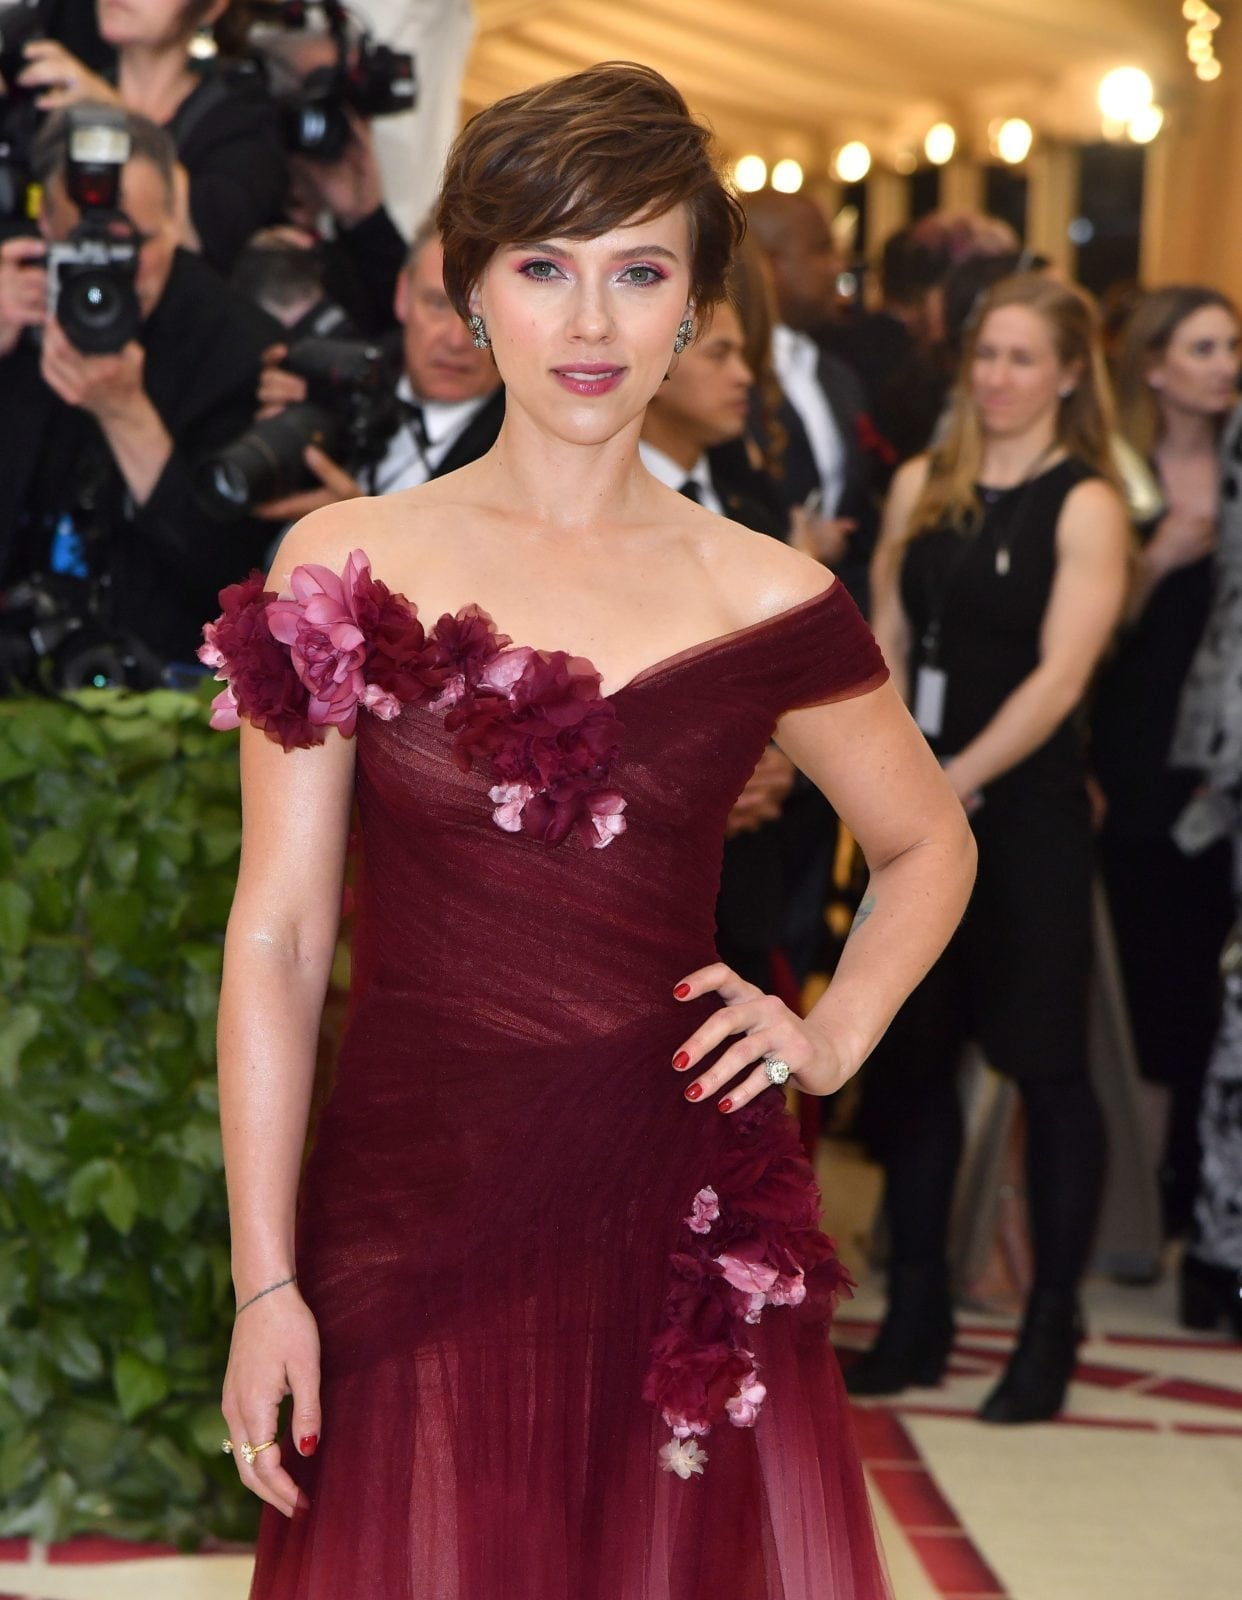 Scarlett Johansson arrives for the 2018 Met Gala on May 7, 2018, at the Metropolitan Museum of Art in New York. - The Gala raises money for the Metropolitan Museum of Arts Costume Institute. The Gala's 2018 theme is Heavenly Bodies: Fashion and the Catholic Imagination. (Photo by ANGELA WEISS / AFP) (Photo credit should read ANGELA WEISS/AFP/Getty Images)